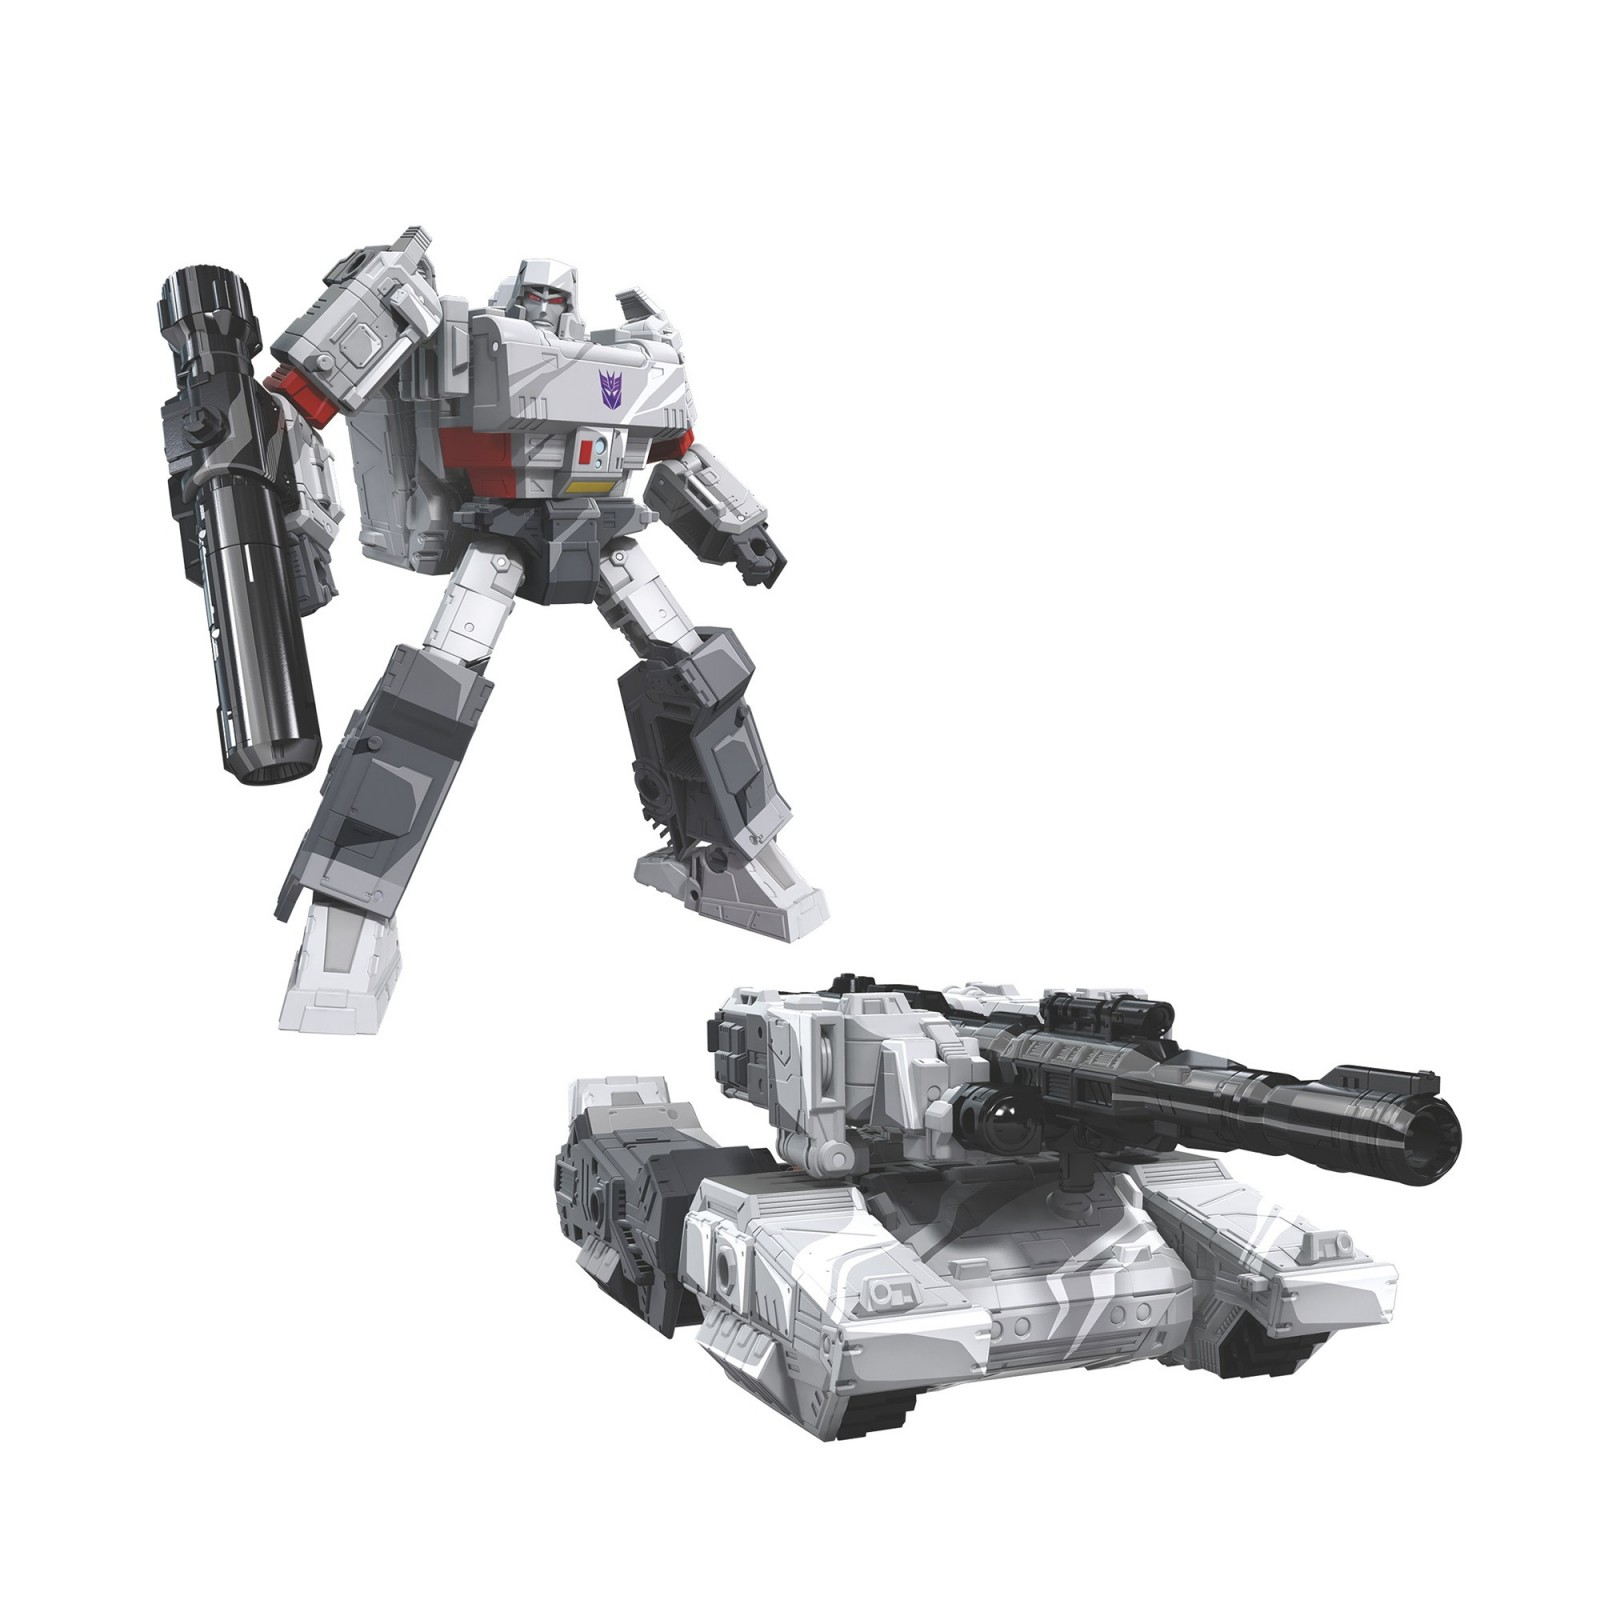 Transformers News: Steal of a Deal - Transformers Generations 35th Anniversary Megatron on Sale for $20.99 on Walmart.c